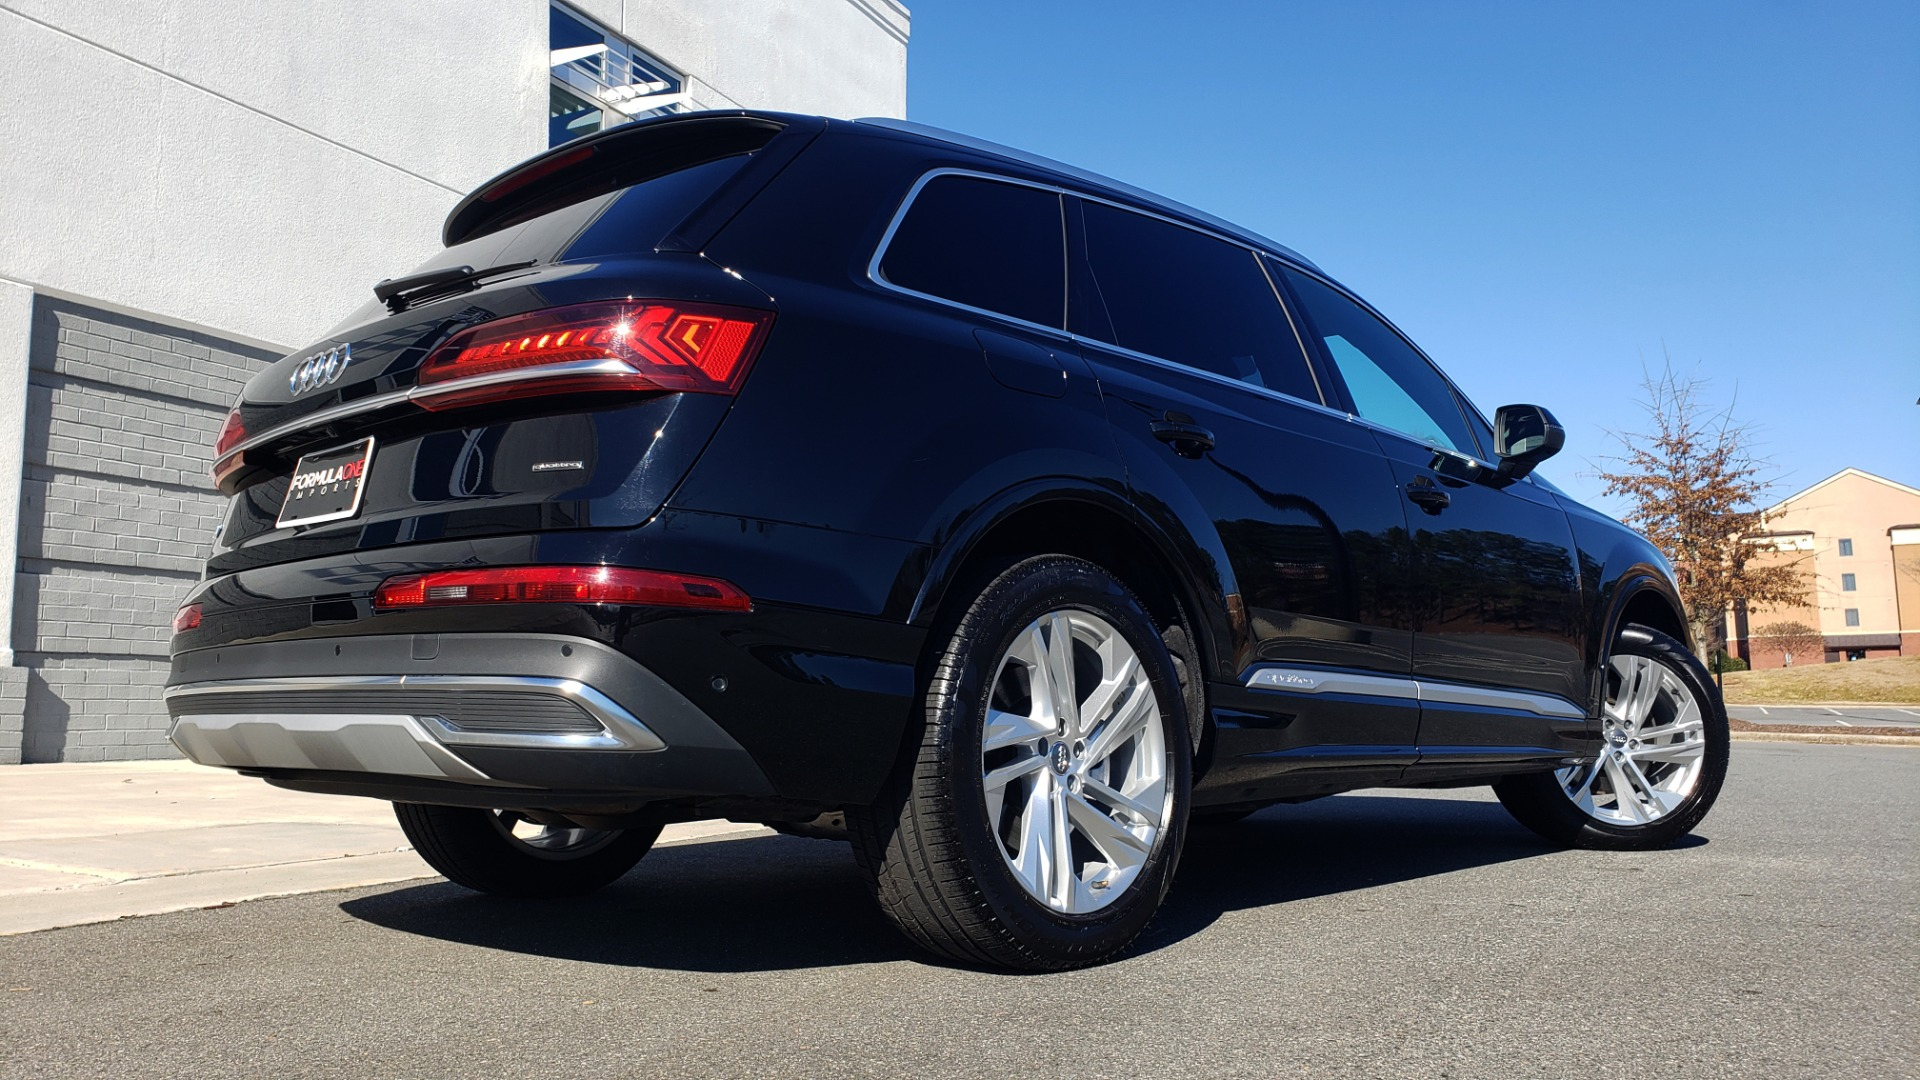 Used 2020 Audi Q7 PREMIUM PLUS / NAV / SUNROOF / 3-ROW / REARVIEW for sale Sold at Formula Imports in Charlotte NC 28227 3